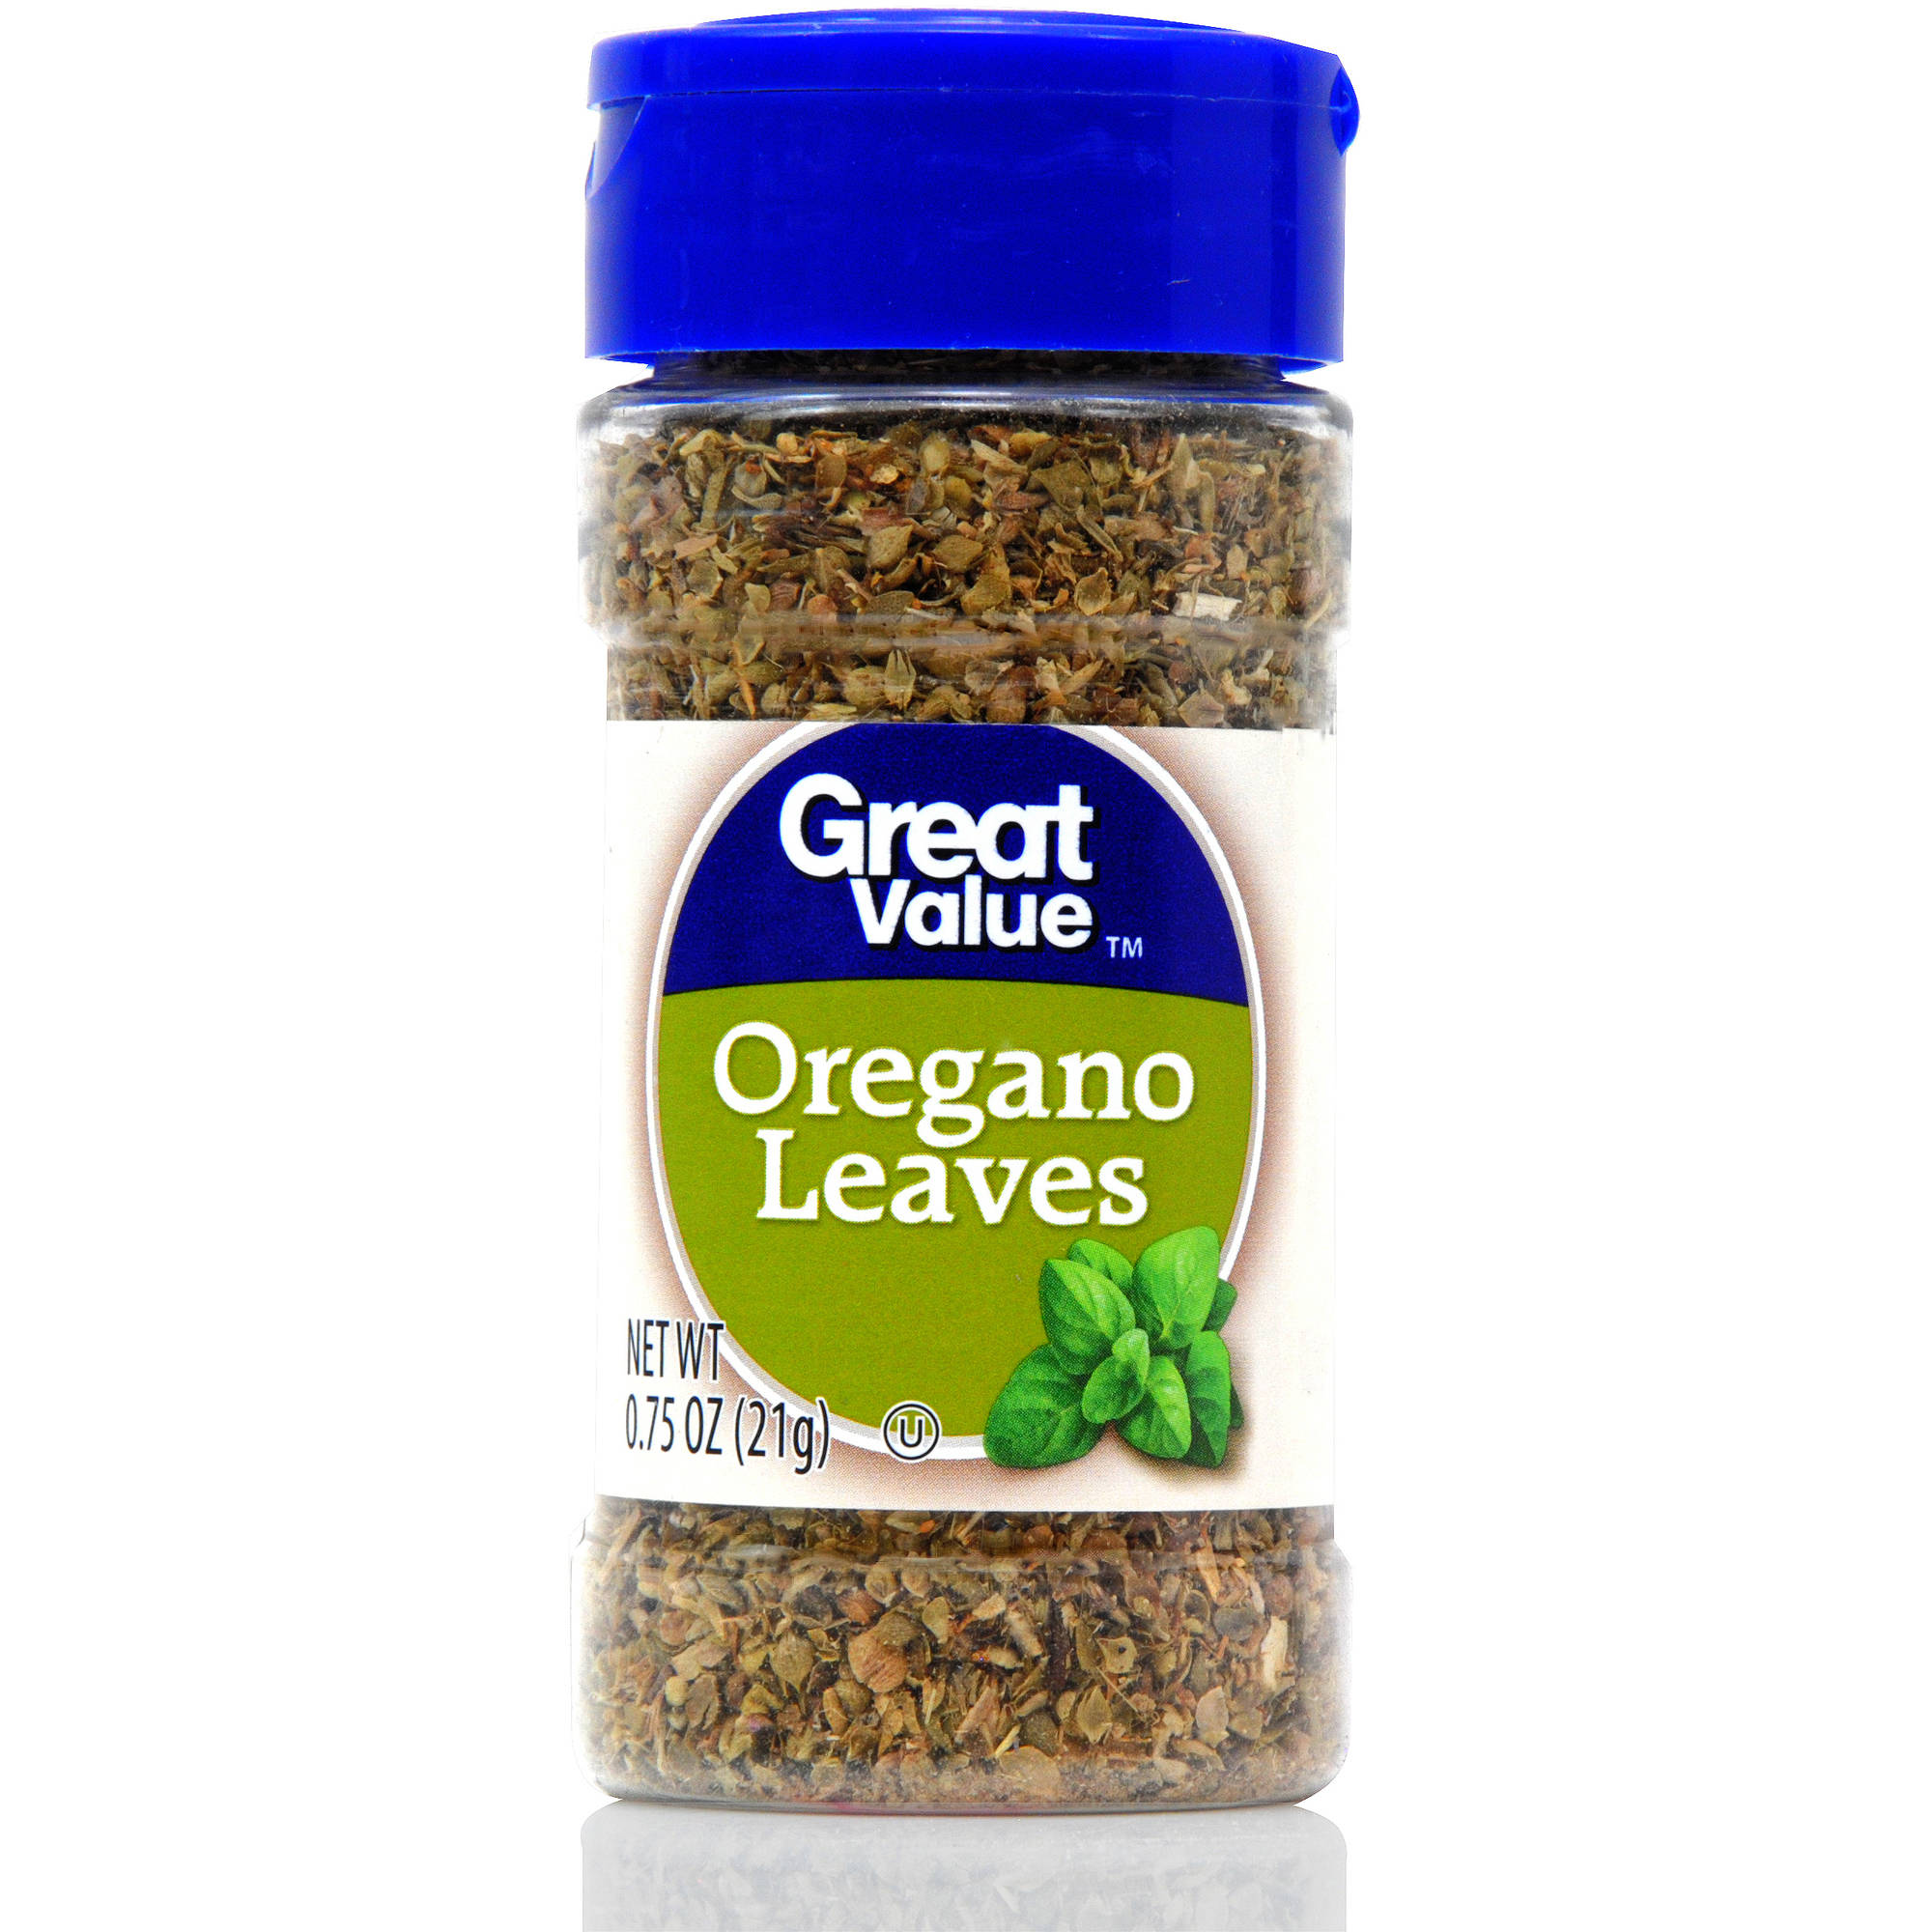 Great Value Oregano Leaves, .75 oz